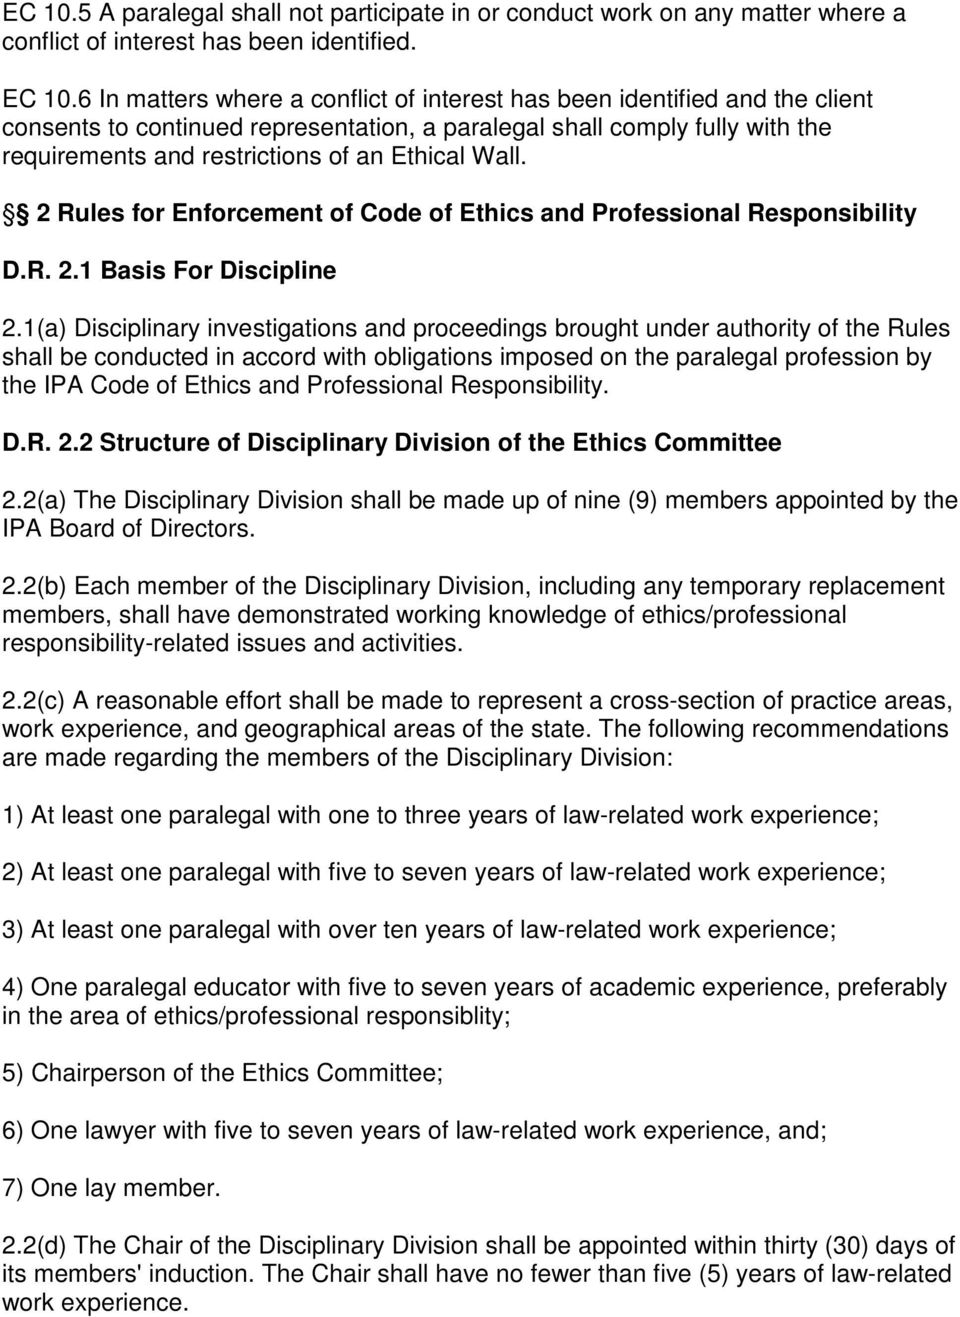 Wall. 2 Rules for Enforcement of Code of Ethics and Professional Responsibility D.R. 2.1 Basis For Discipline 2.